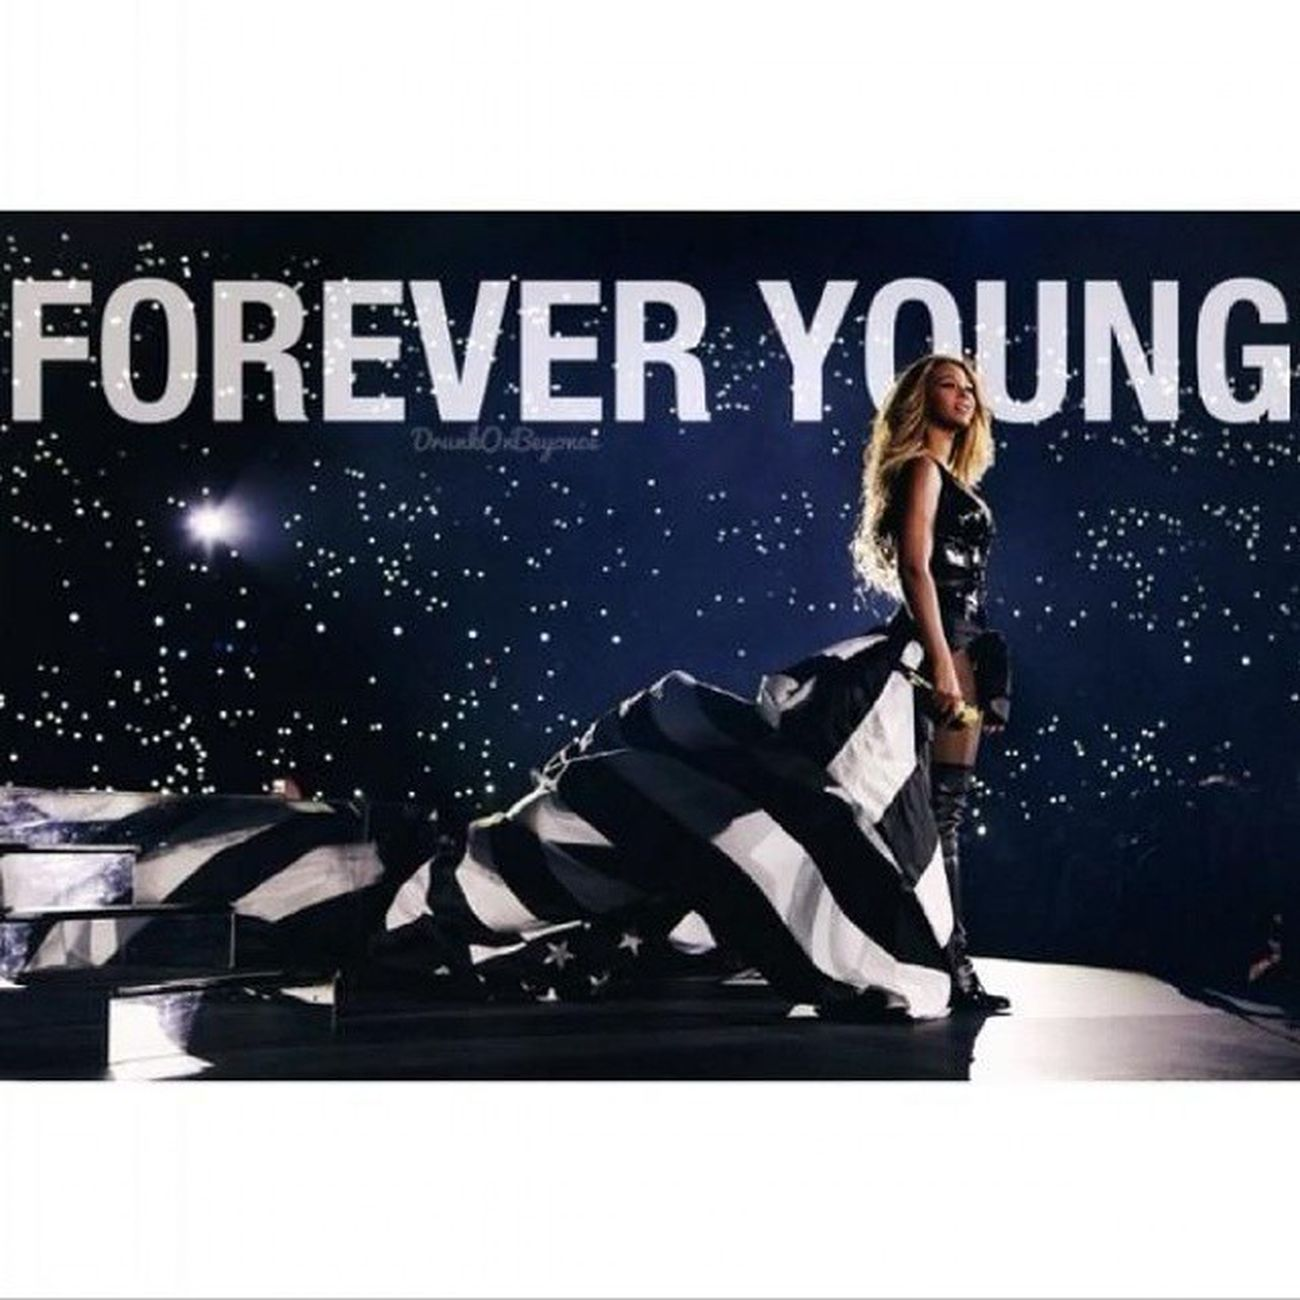 Since 1981| the Bey day A colmeia se levantou para comemorar o dia mais esperado do ano🐝 vamos dar as mãos e cantar forever young The beyoncé international day ❤ Bday Beyday 34Years Weloveyou thequeenbey specialday bey